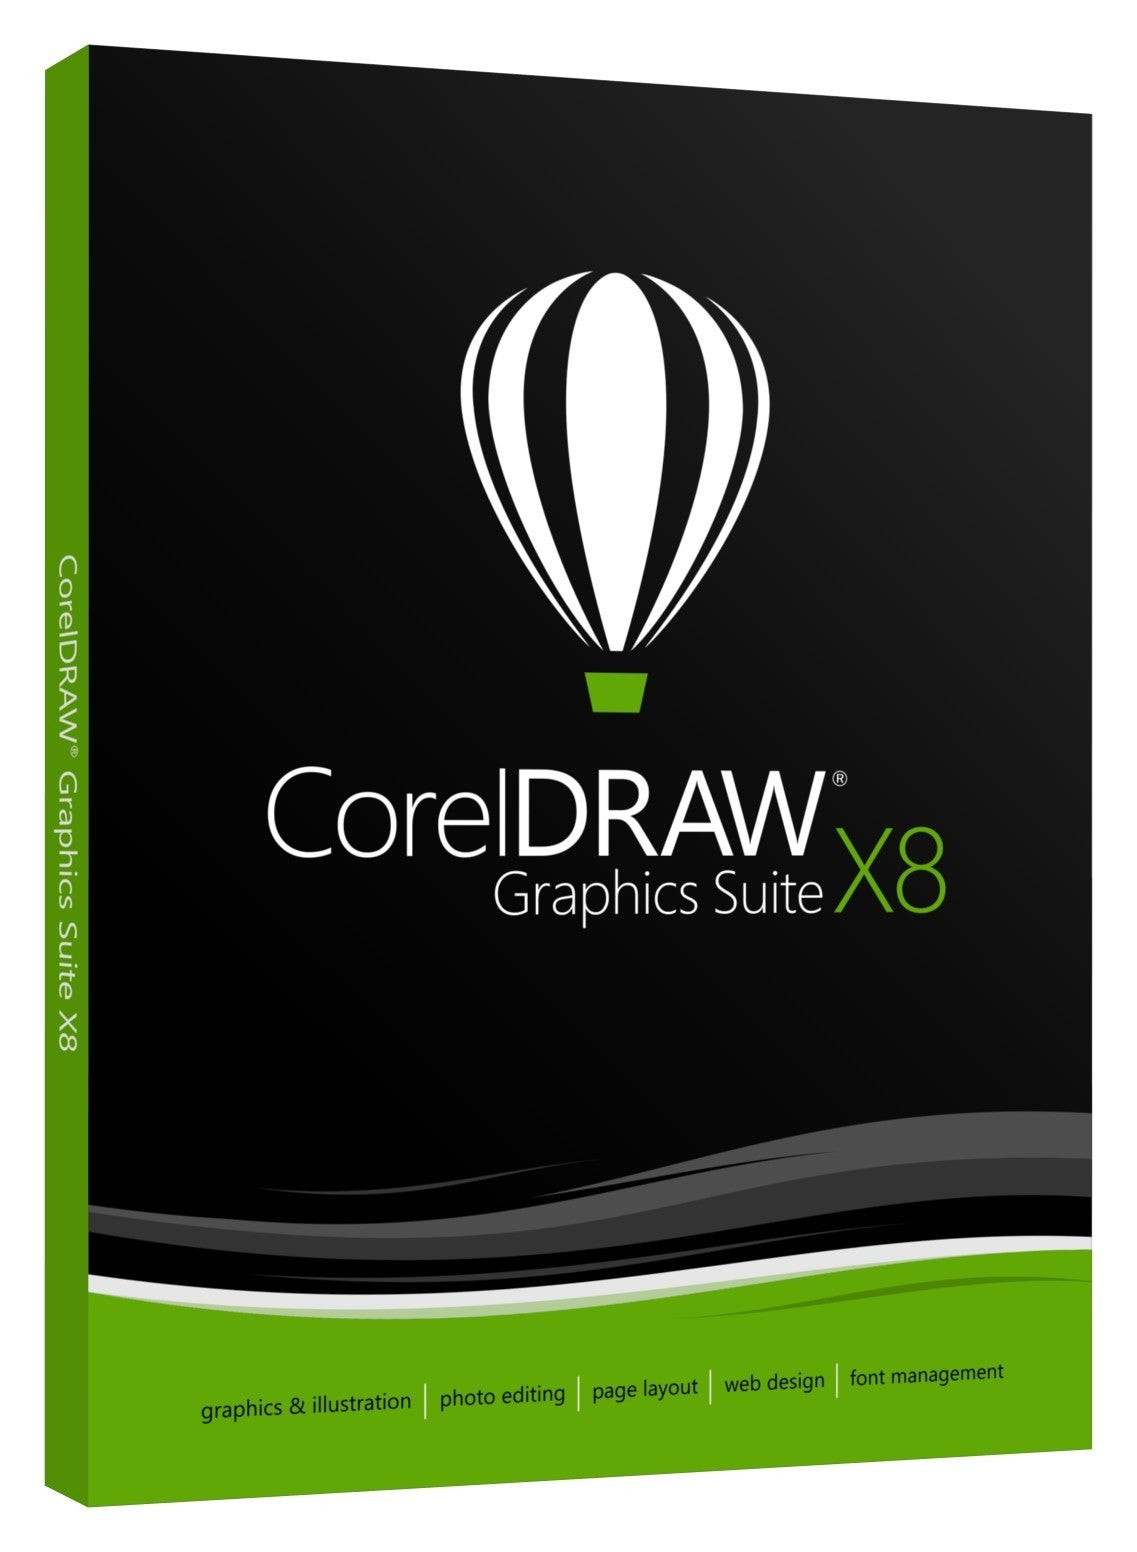 Corel draw version compatible with windows 10 - Coreldraw Graphics Suite X8 Box